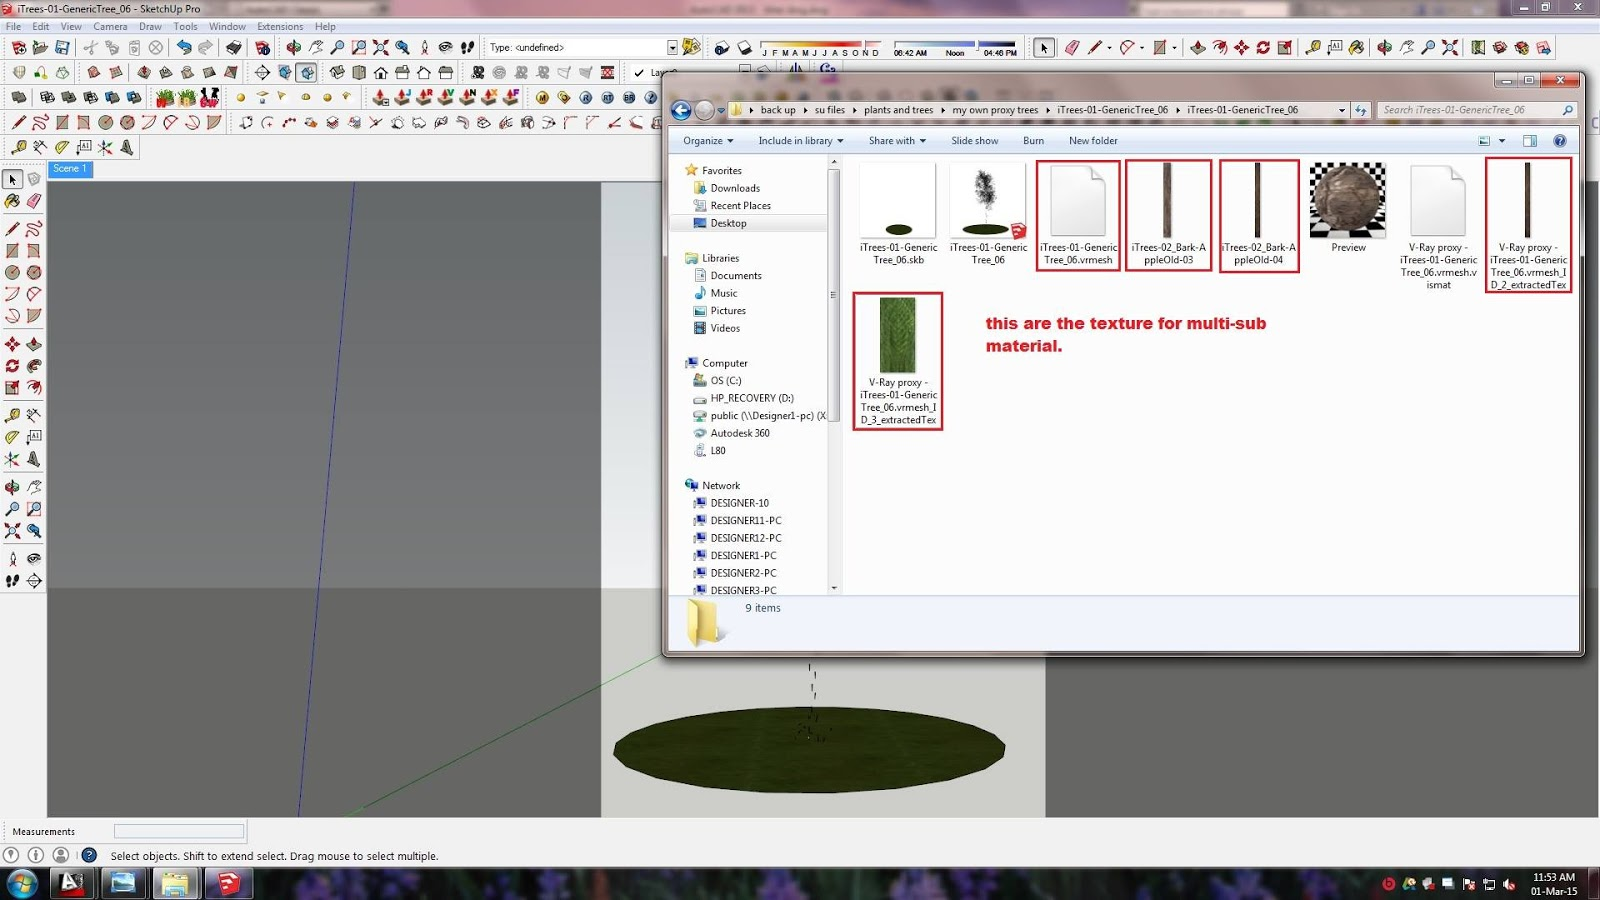 SKETCHUP TEXTURE: Tutorial Vray for Sketchup - How to apply